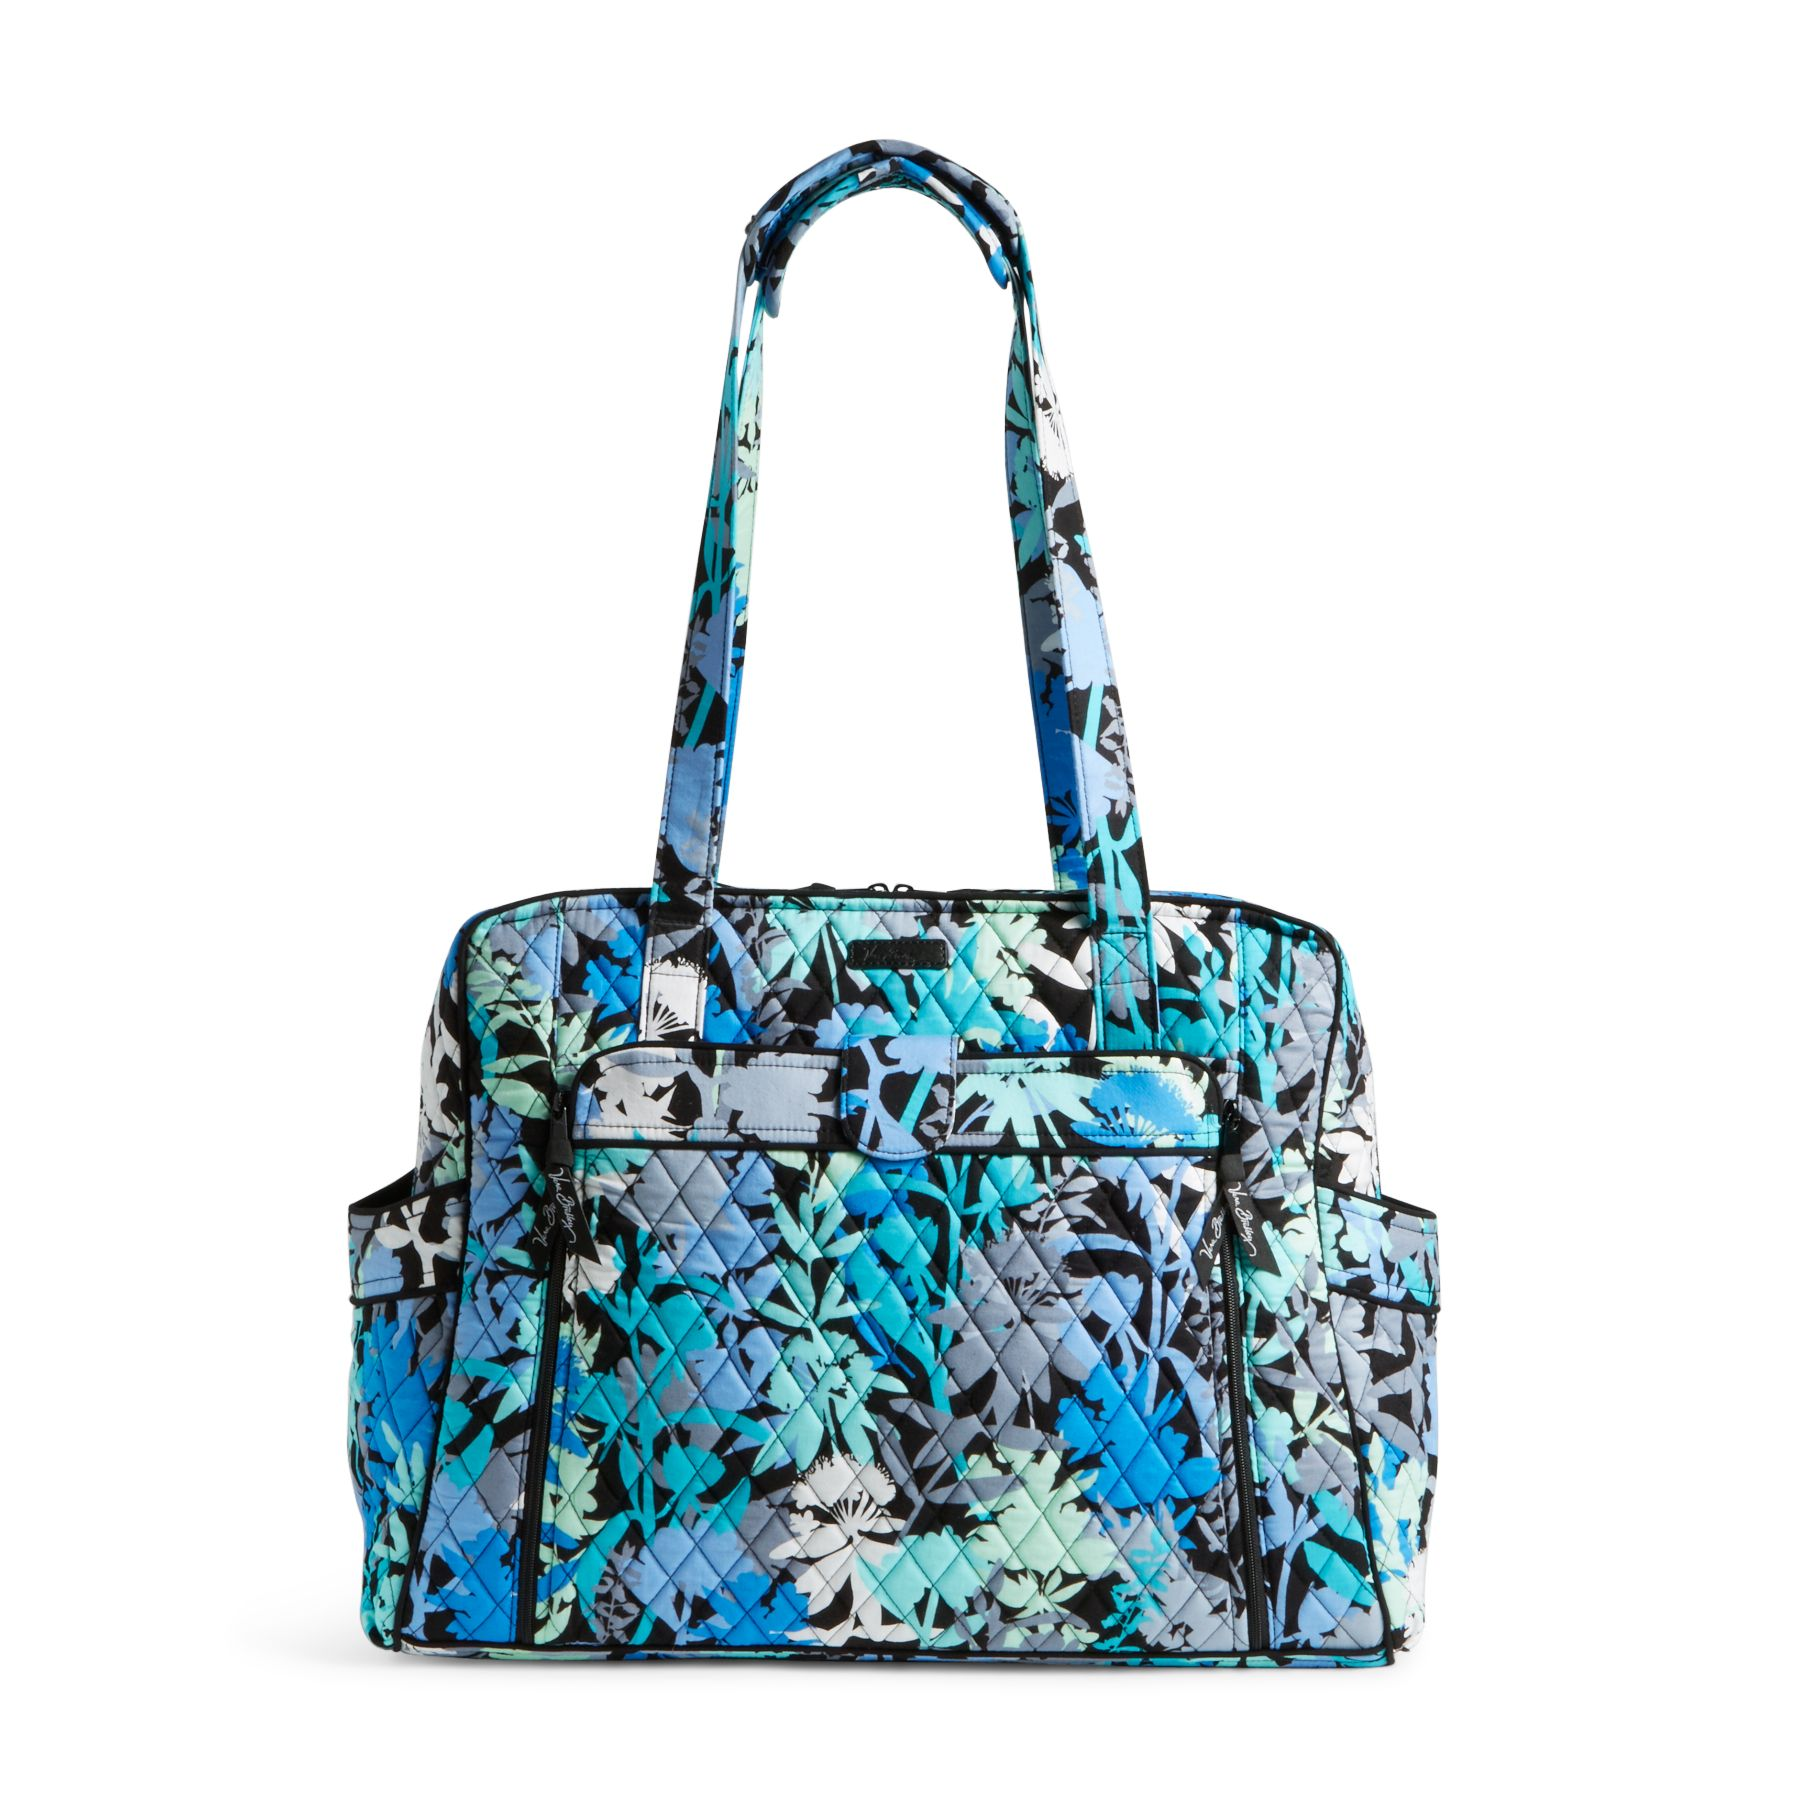 Upc 886003351420 Vera Bradley Large Stroll Around Baby Bag